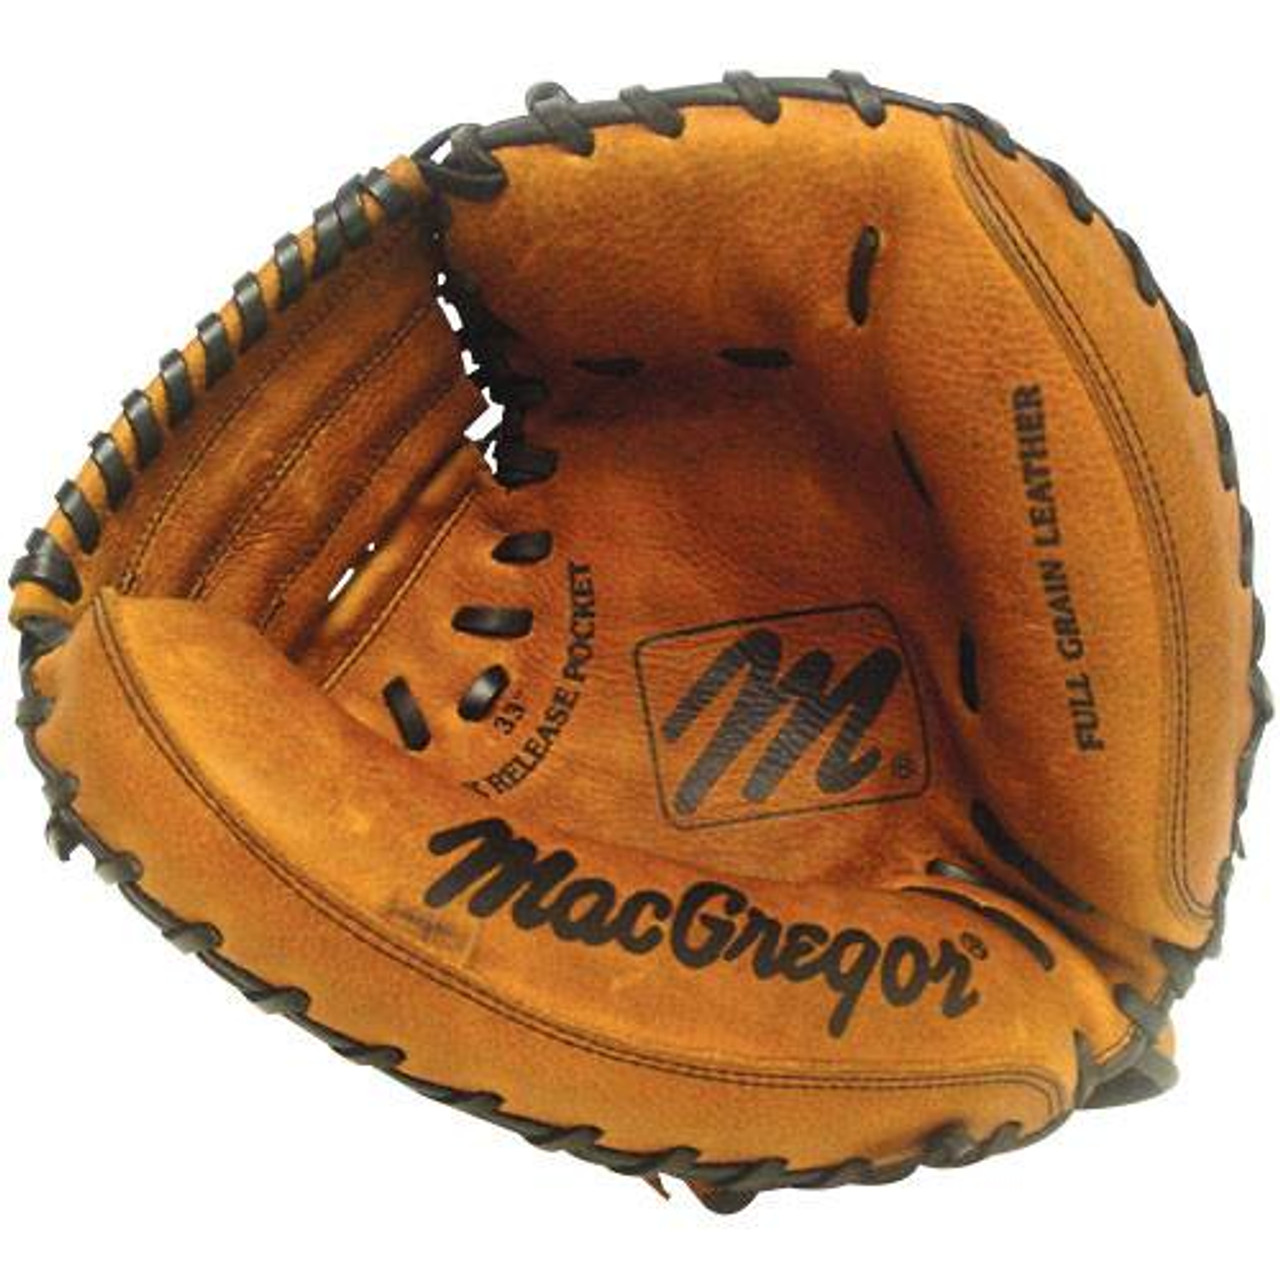 MAC Varsity Series Baseball Catchers Mitt RHT